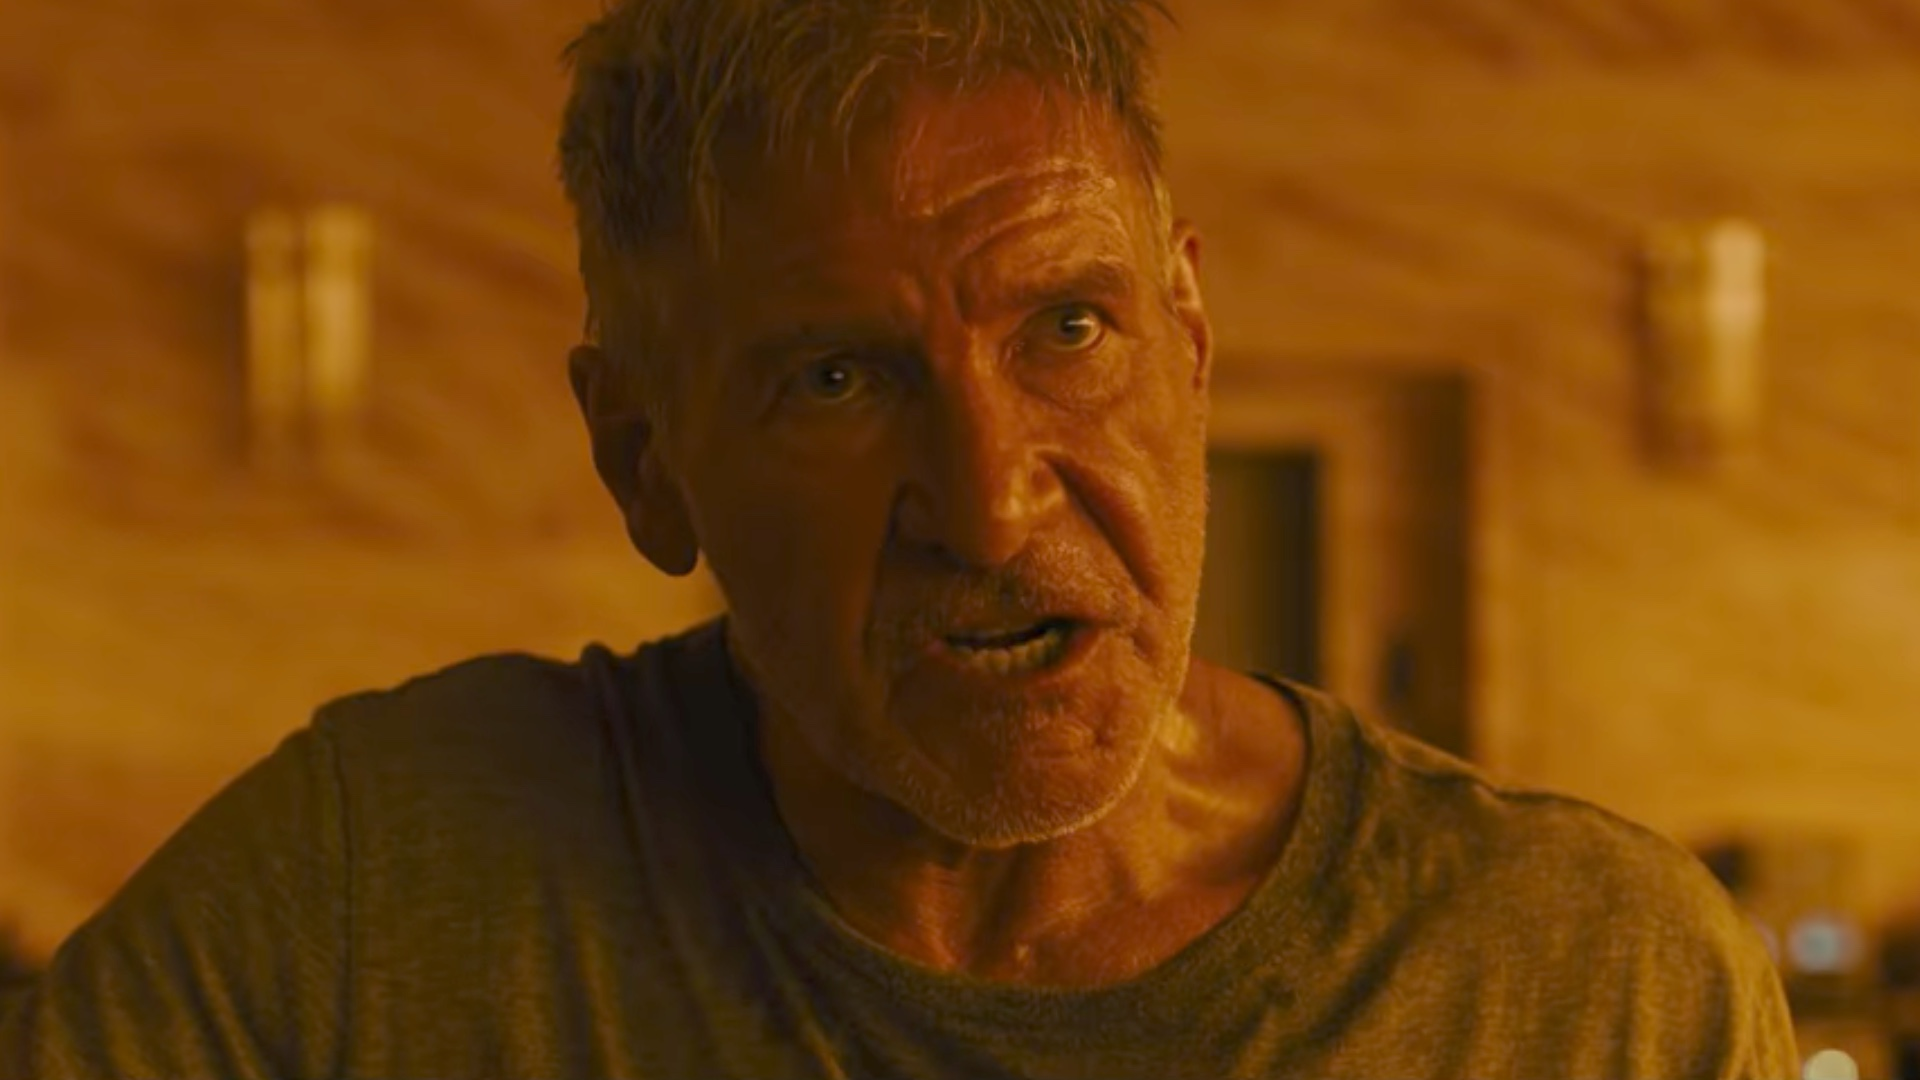 two-new-tv-spots-for-blade-runner-2049-asks-questions-and-gives-answers-social.jpg